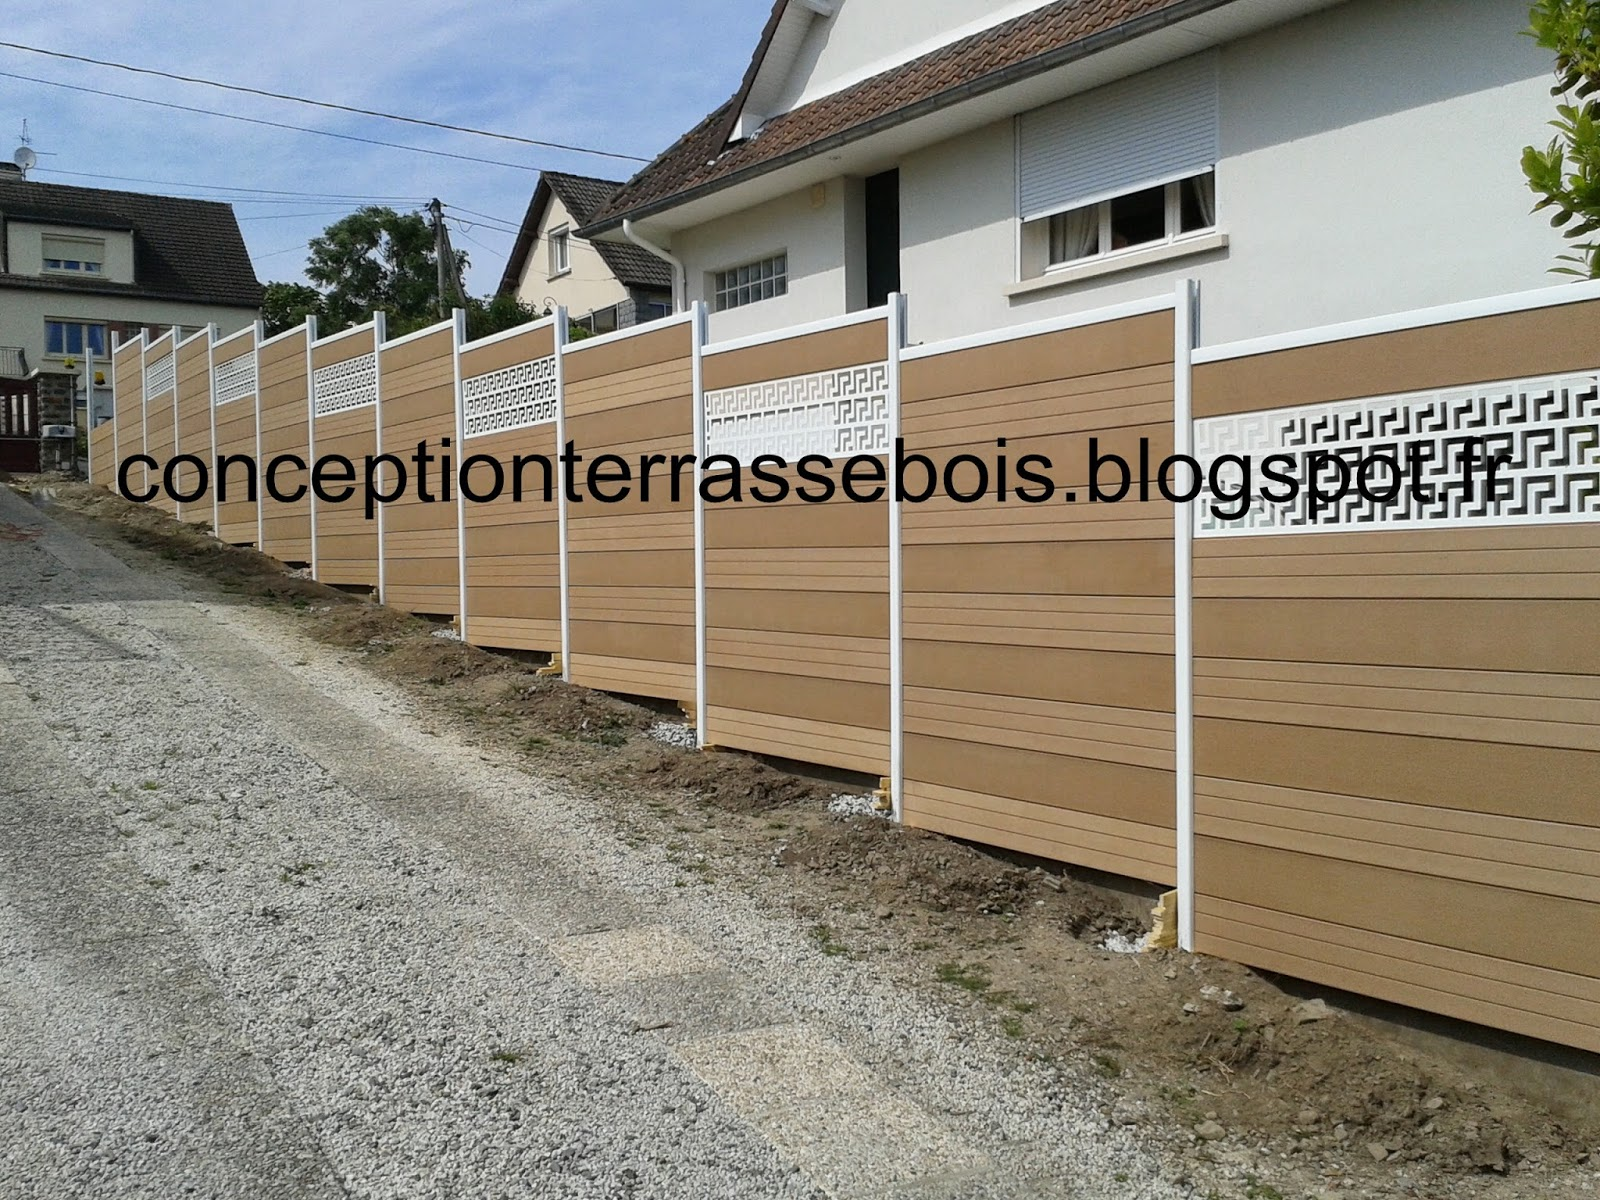 Cl ture composite conception d 39 une terrasse en bois Cloture composite